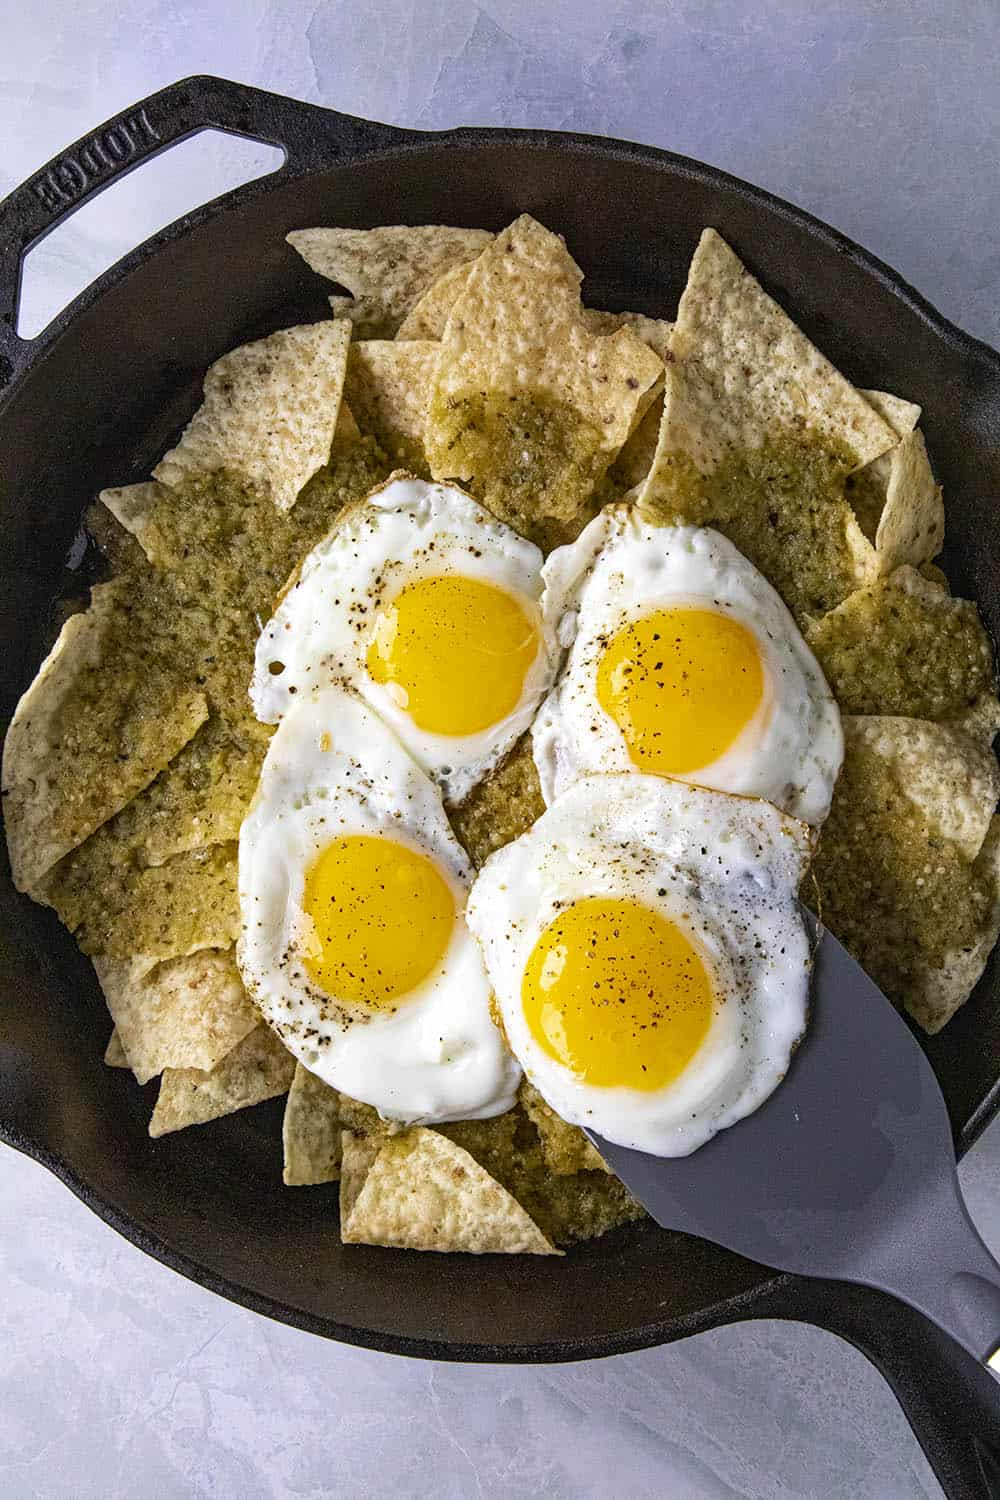 Topping the tortillas with fried eggs